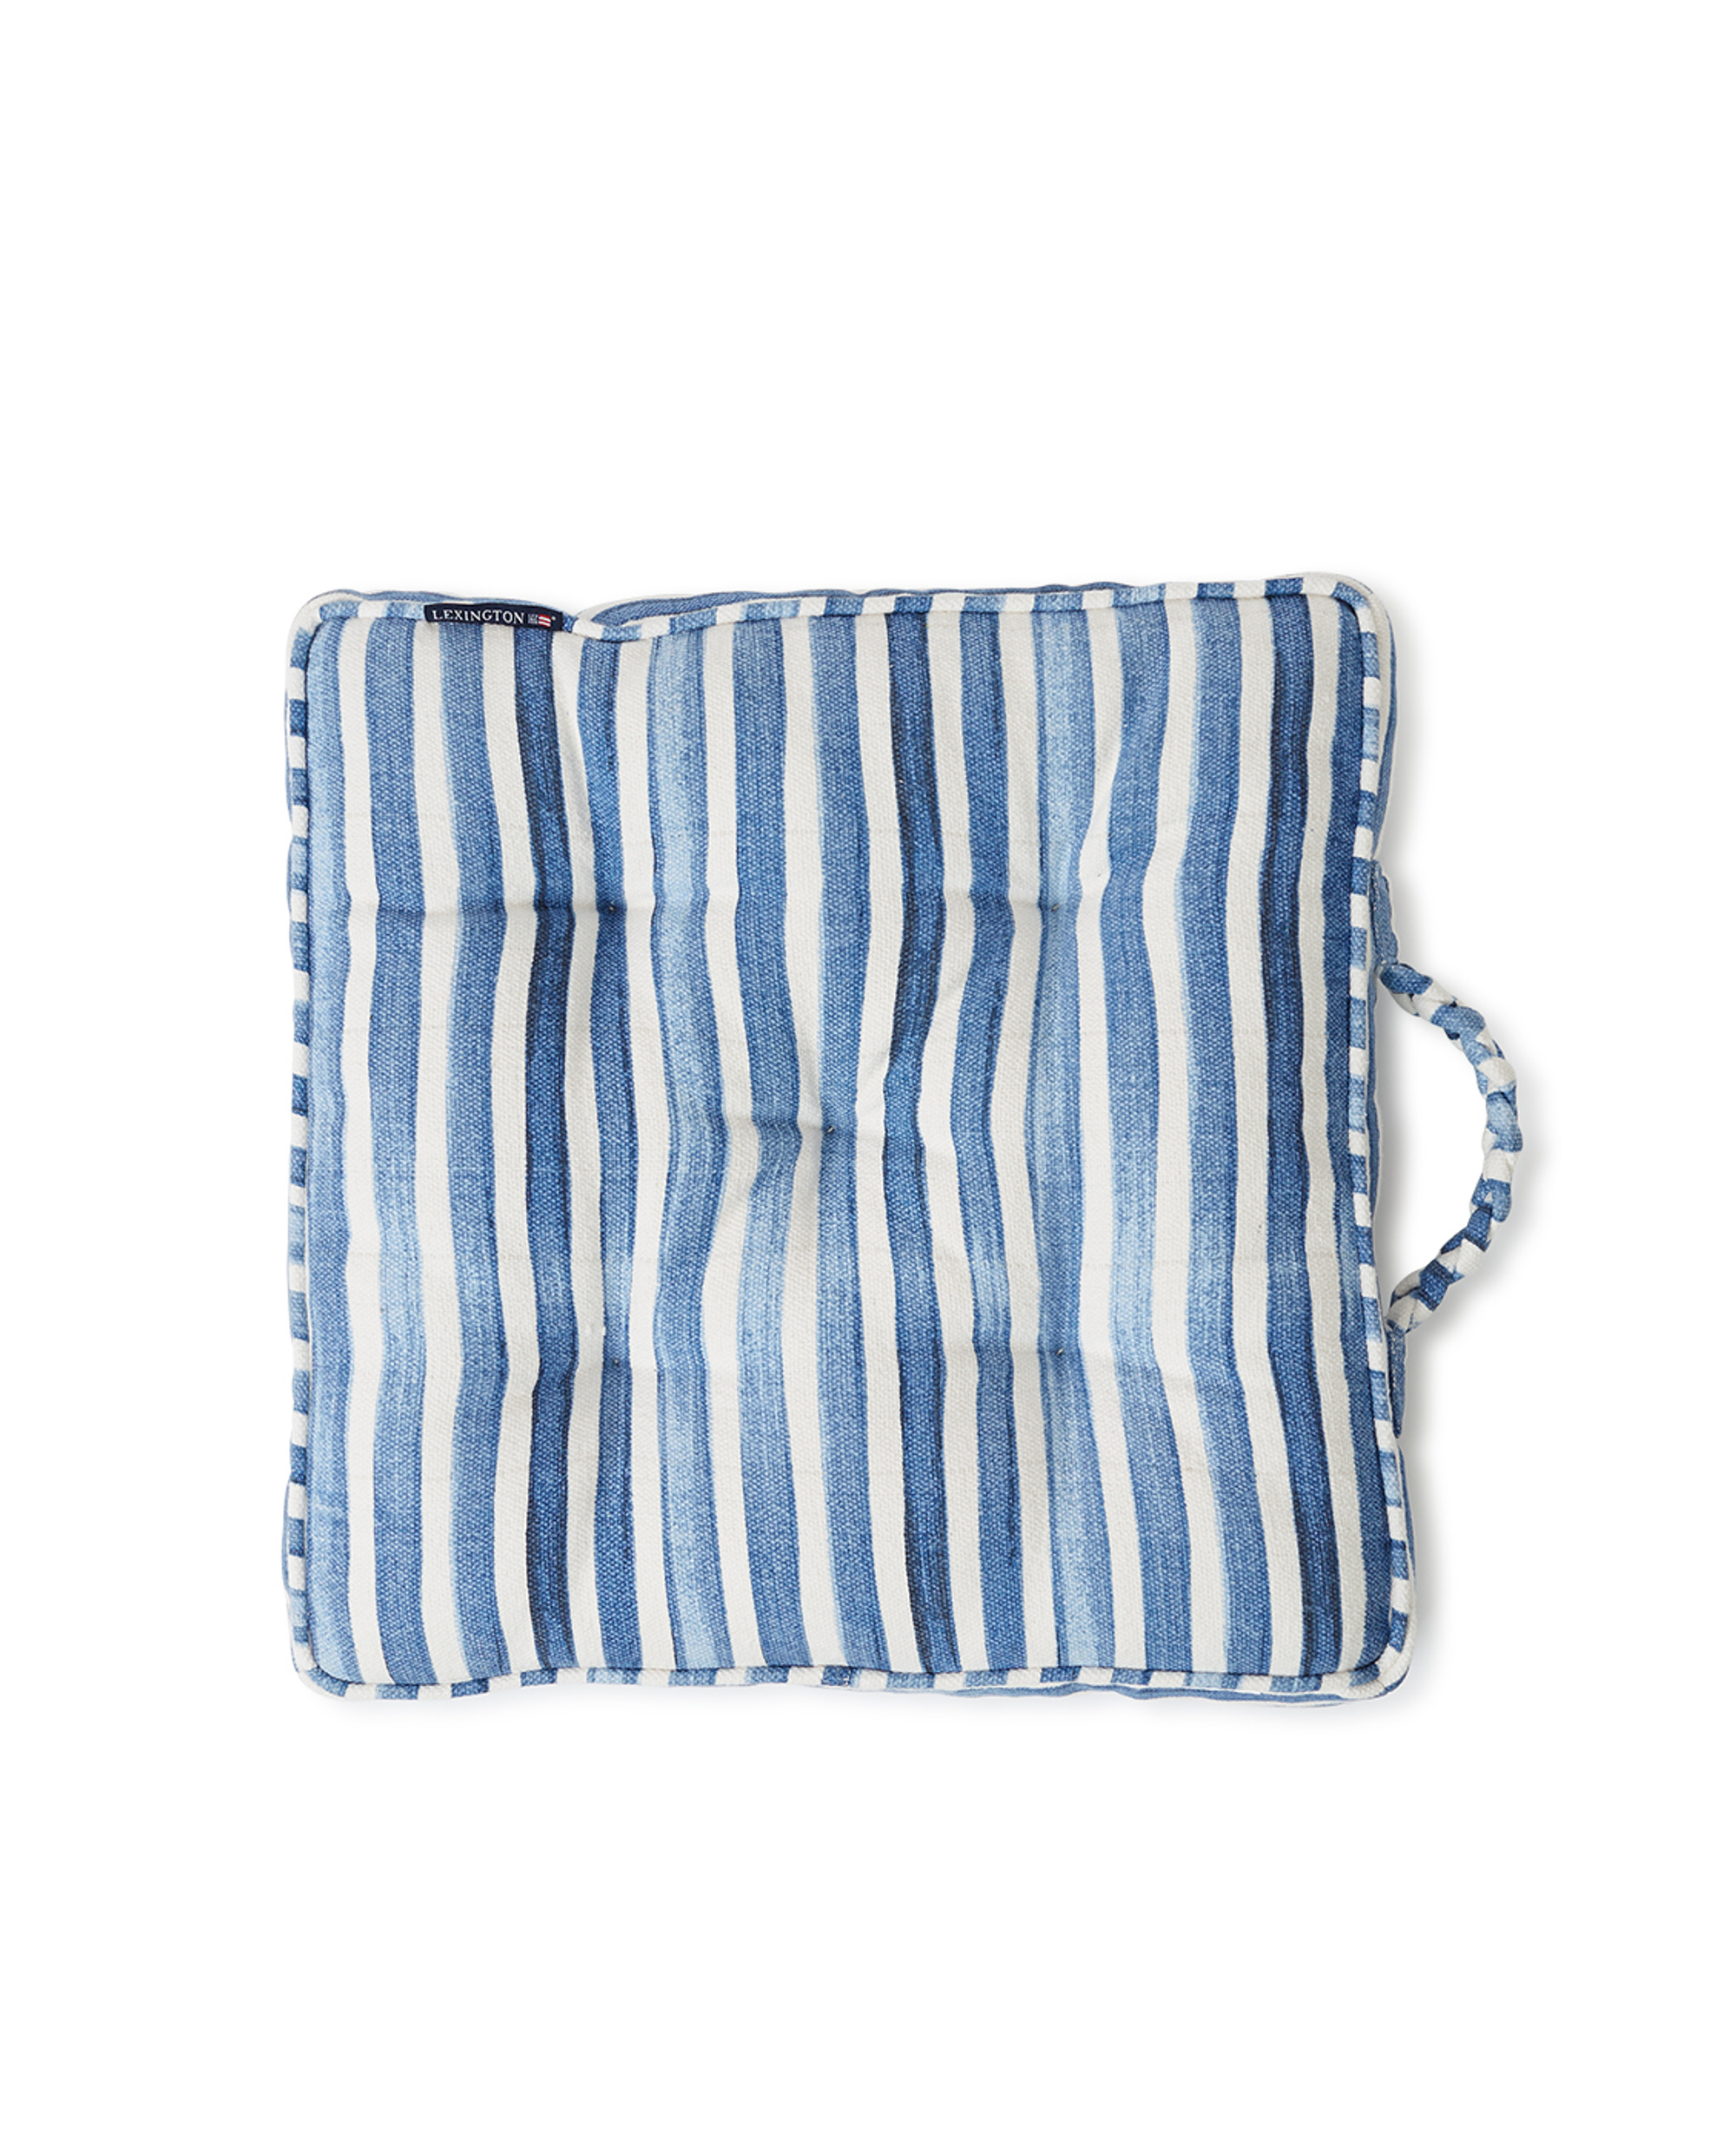 Blue Striped Cotton Canvas Outdoor/Indoor Cushion